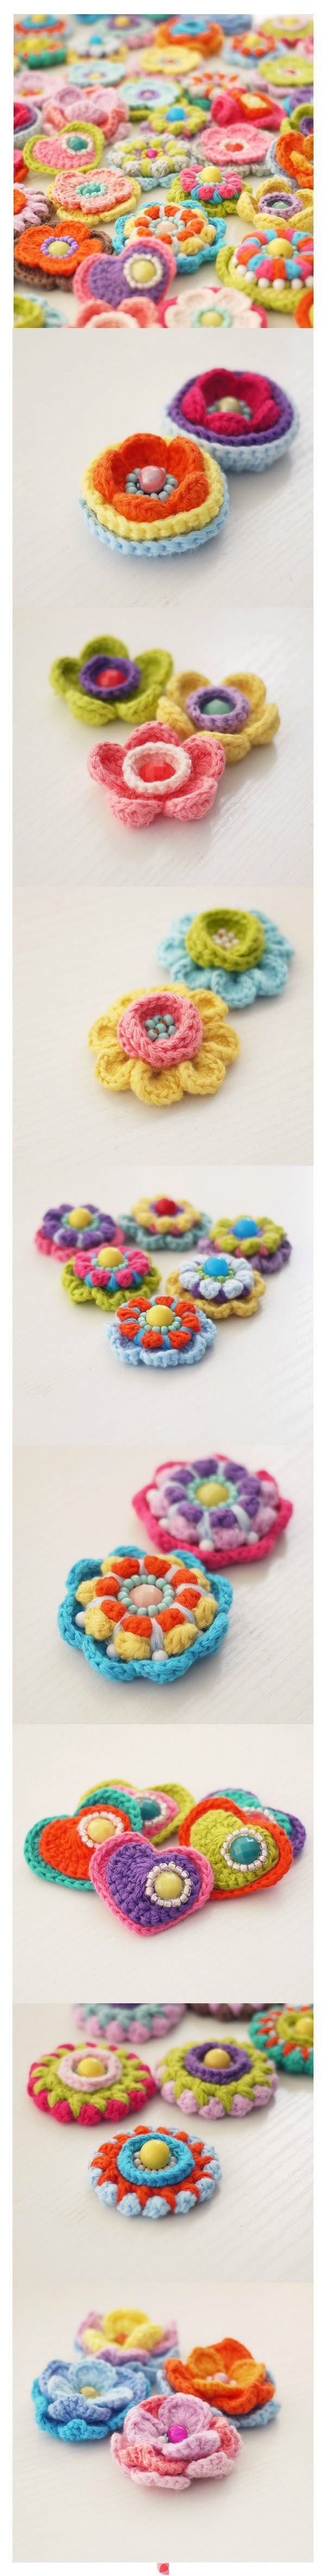 Crochet flowers for brouche ... inspiration only